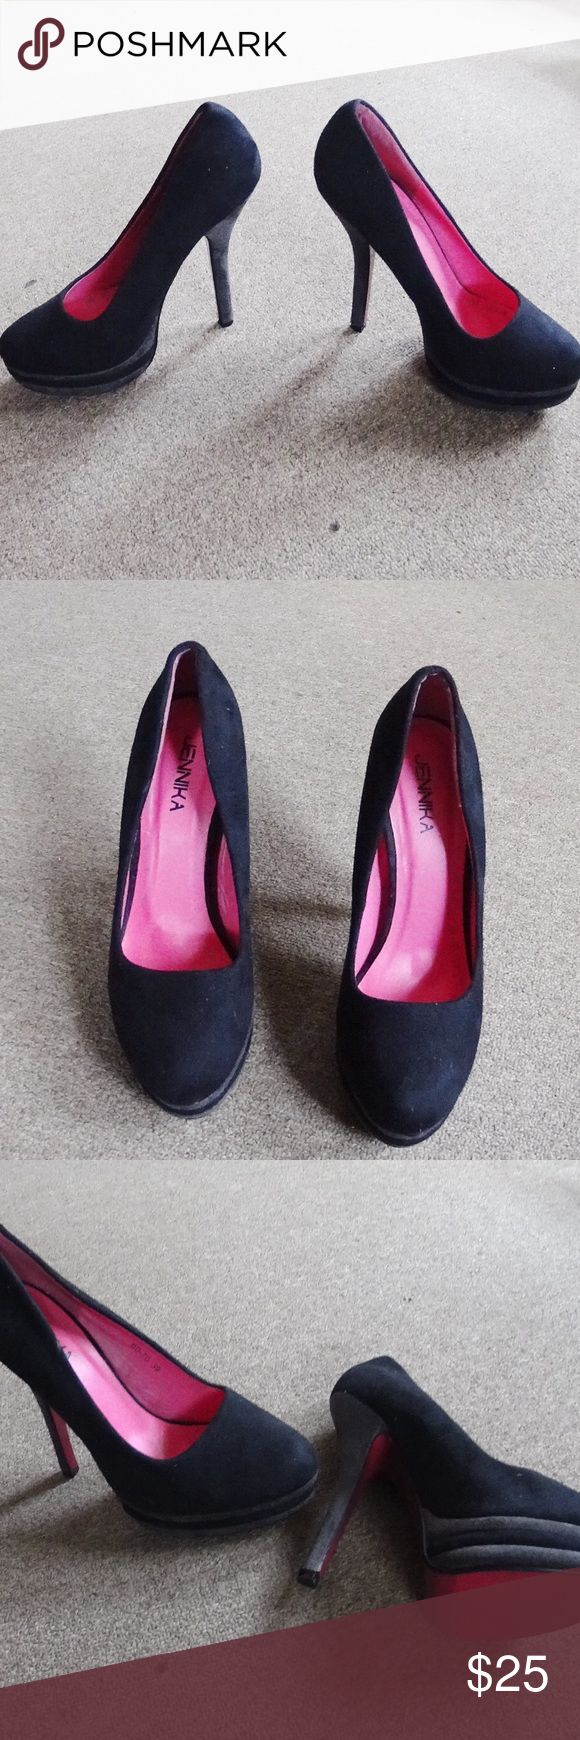 Cute Black Heels 👠 Very cute and classy black heels. Size Euro 39 so U.S. 9. Worn a few times but still in good conditions and look very nice. Shoes Heels